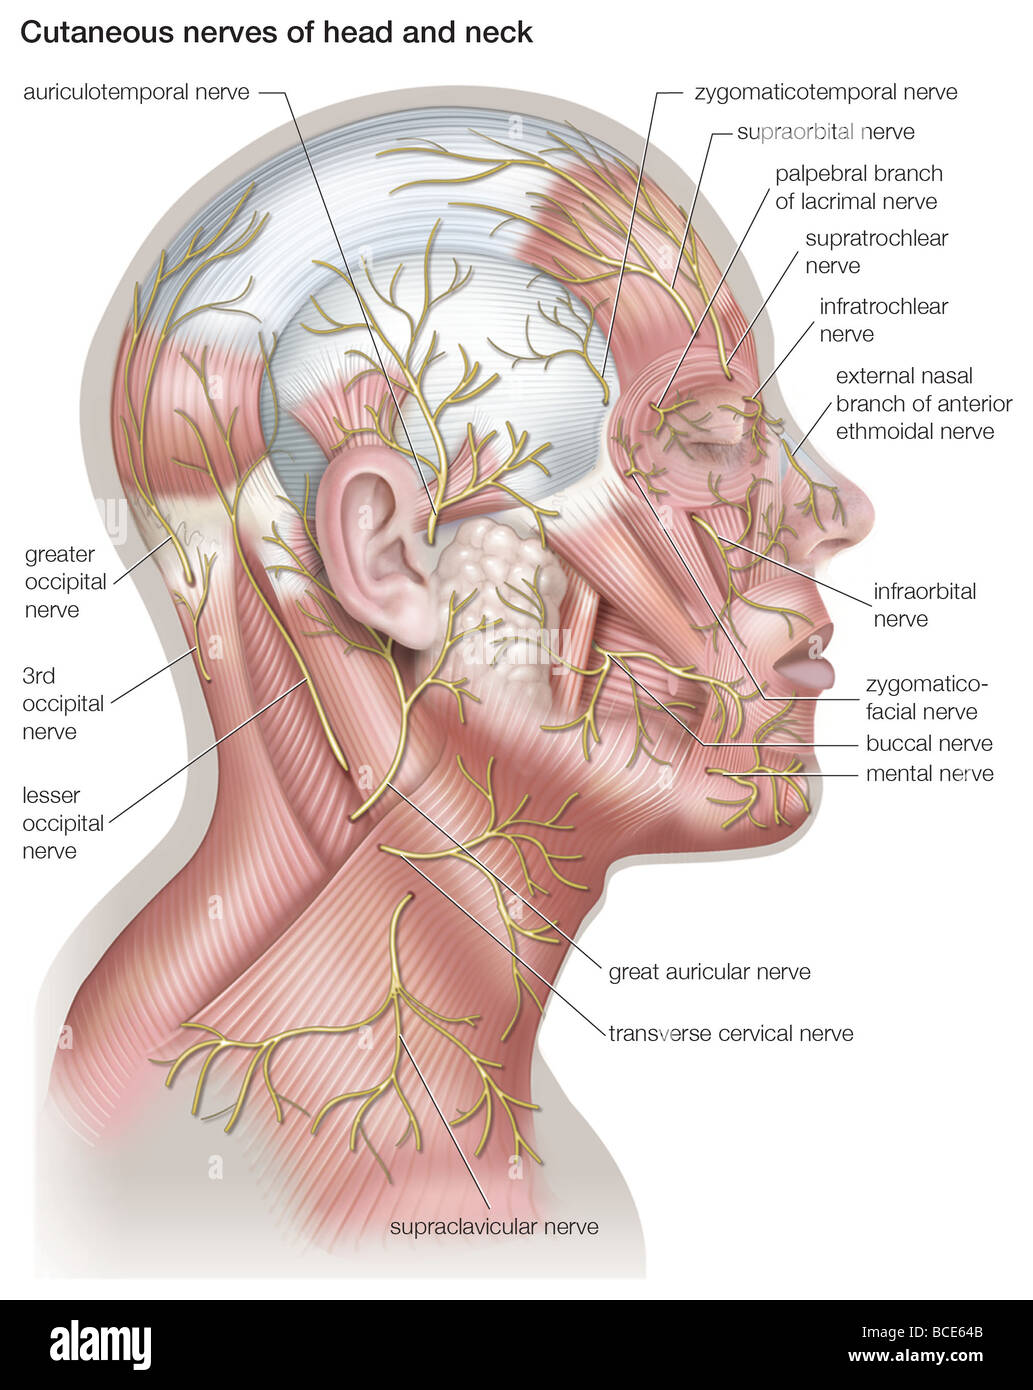 hight resolution of diagram of the cutaneous nerves of the head and neck